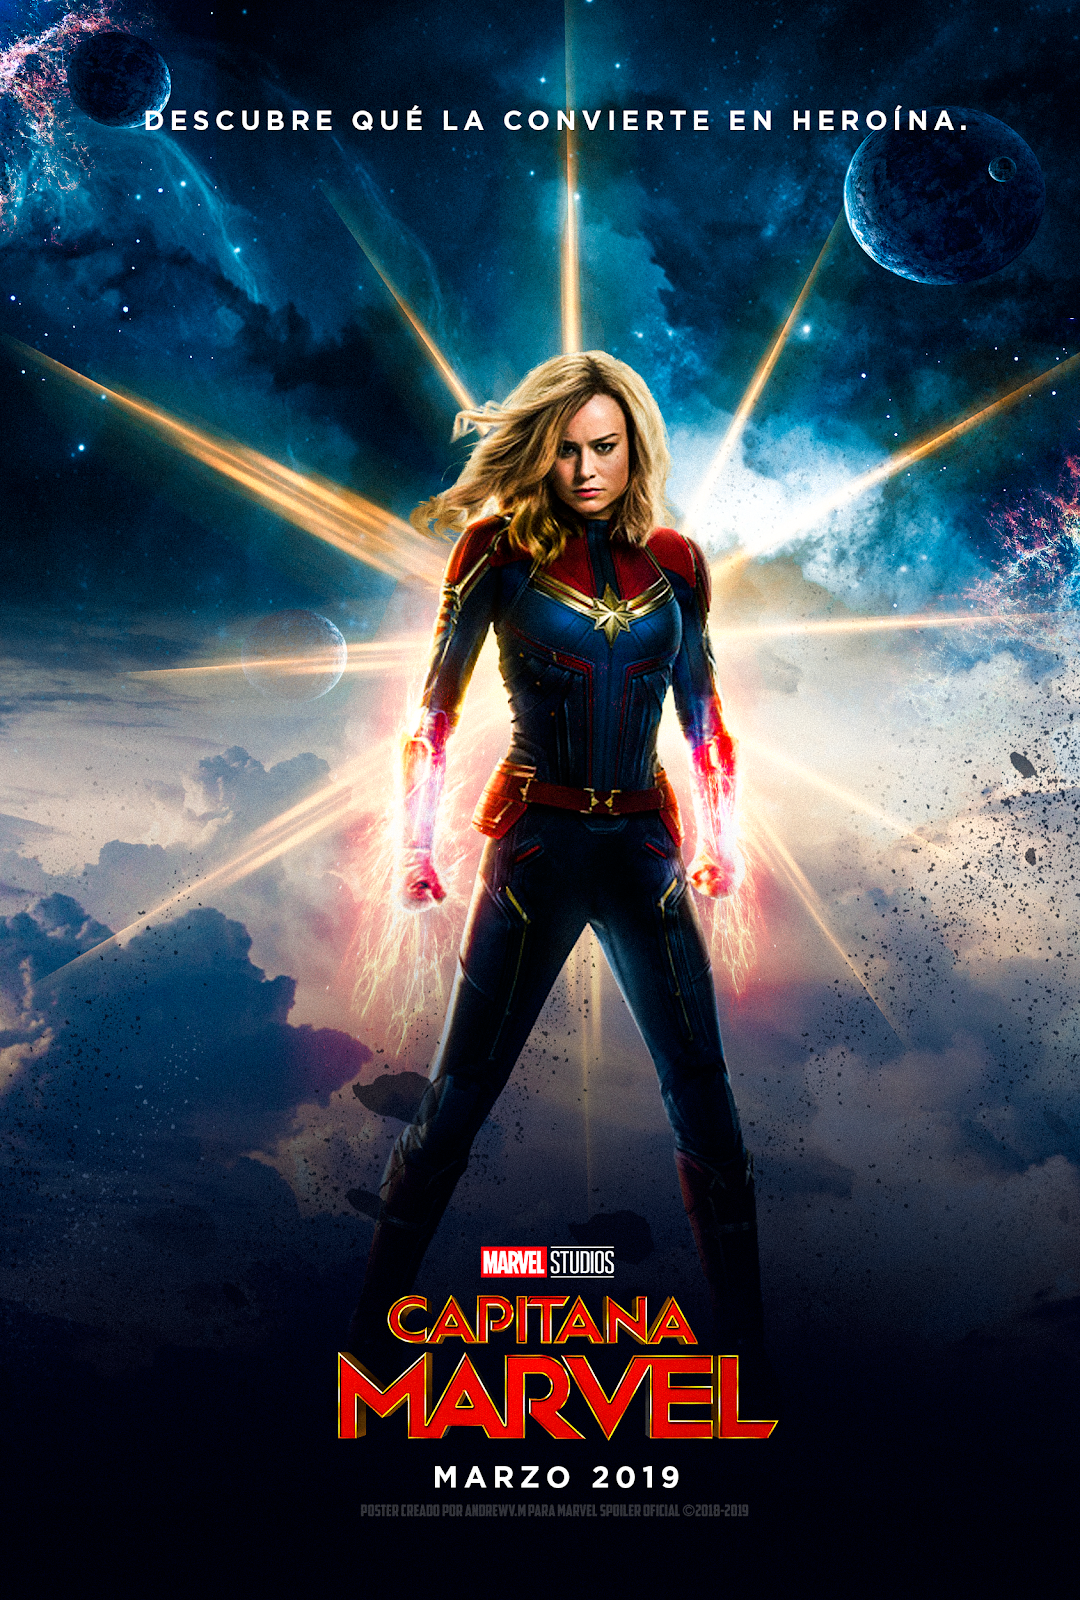 Free Download Captain Marvel Hd Posters Wallpapers Photos And Actress Brie 1080x1600 For Your Desktop Mobile Tablet Explore 22 Captain Marvel Hd Wallpapers Captain Marvel Hd Wallpapers Captain Marvel